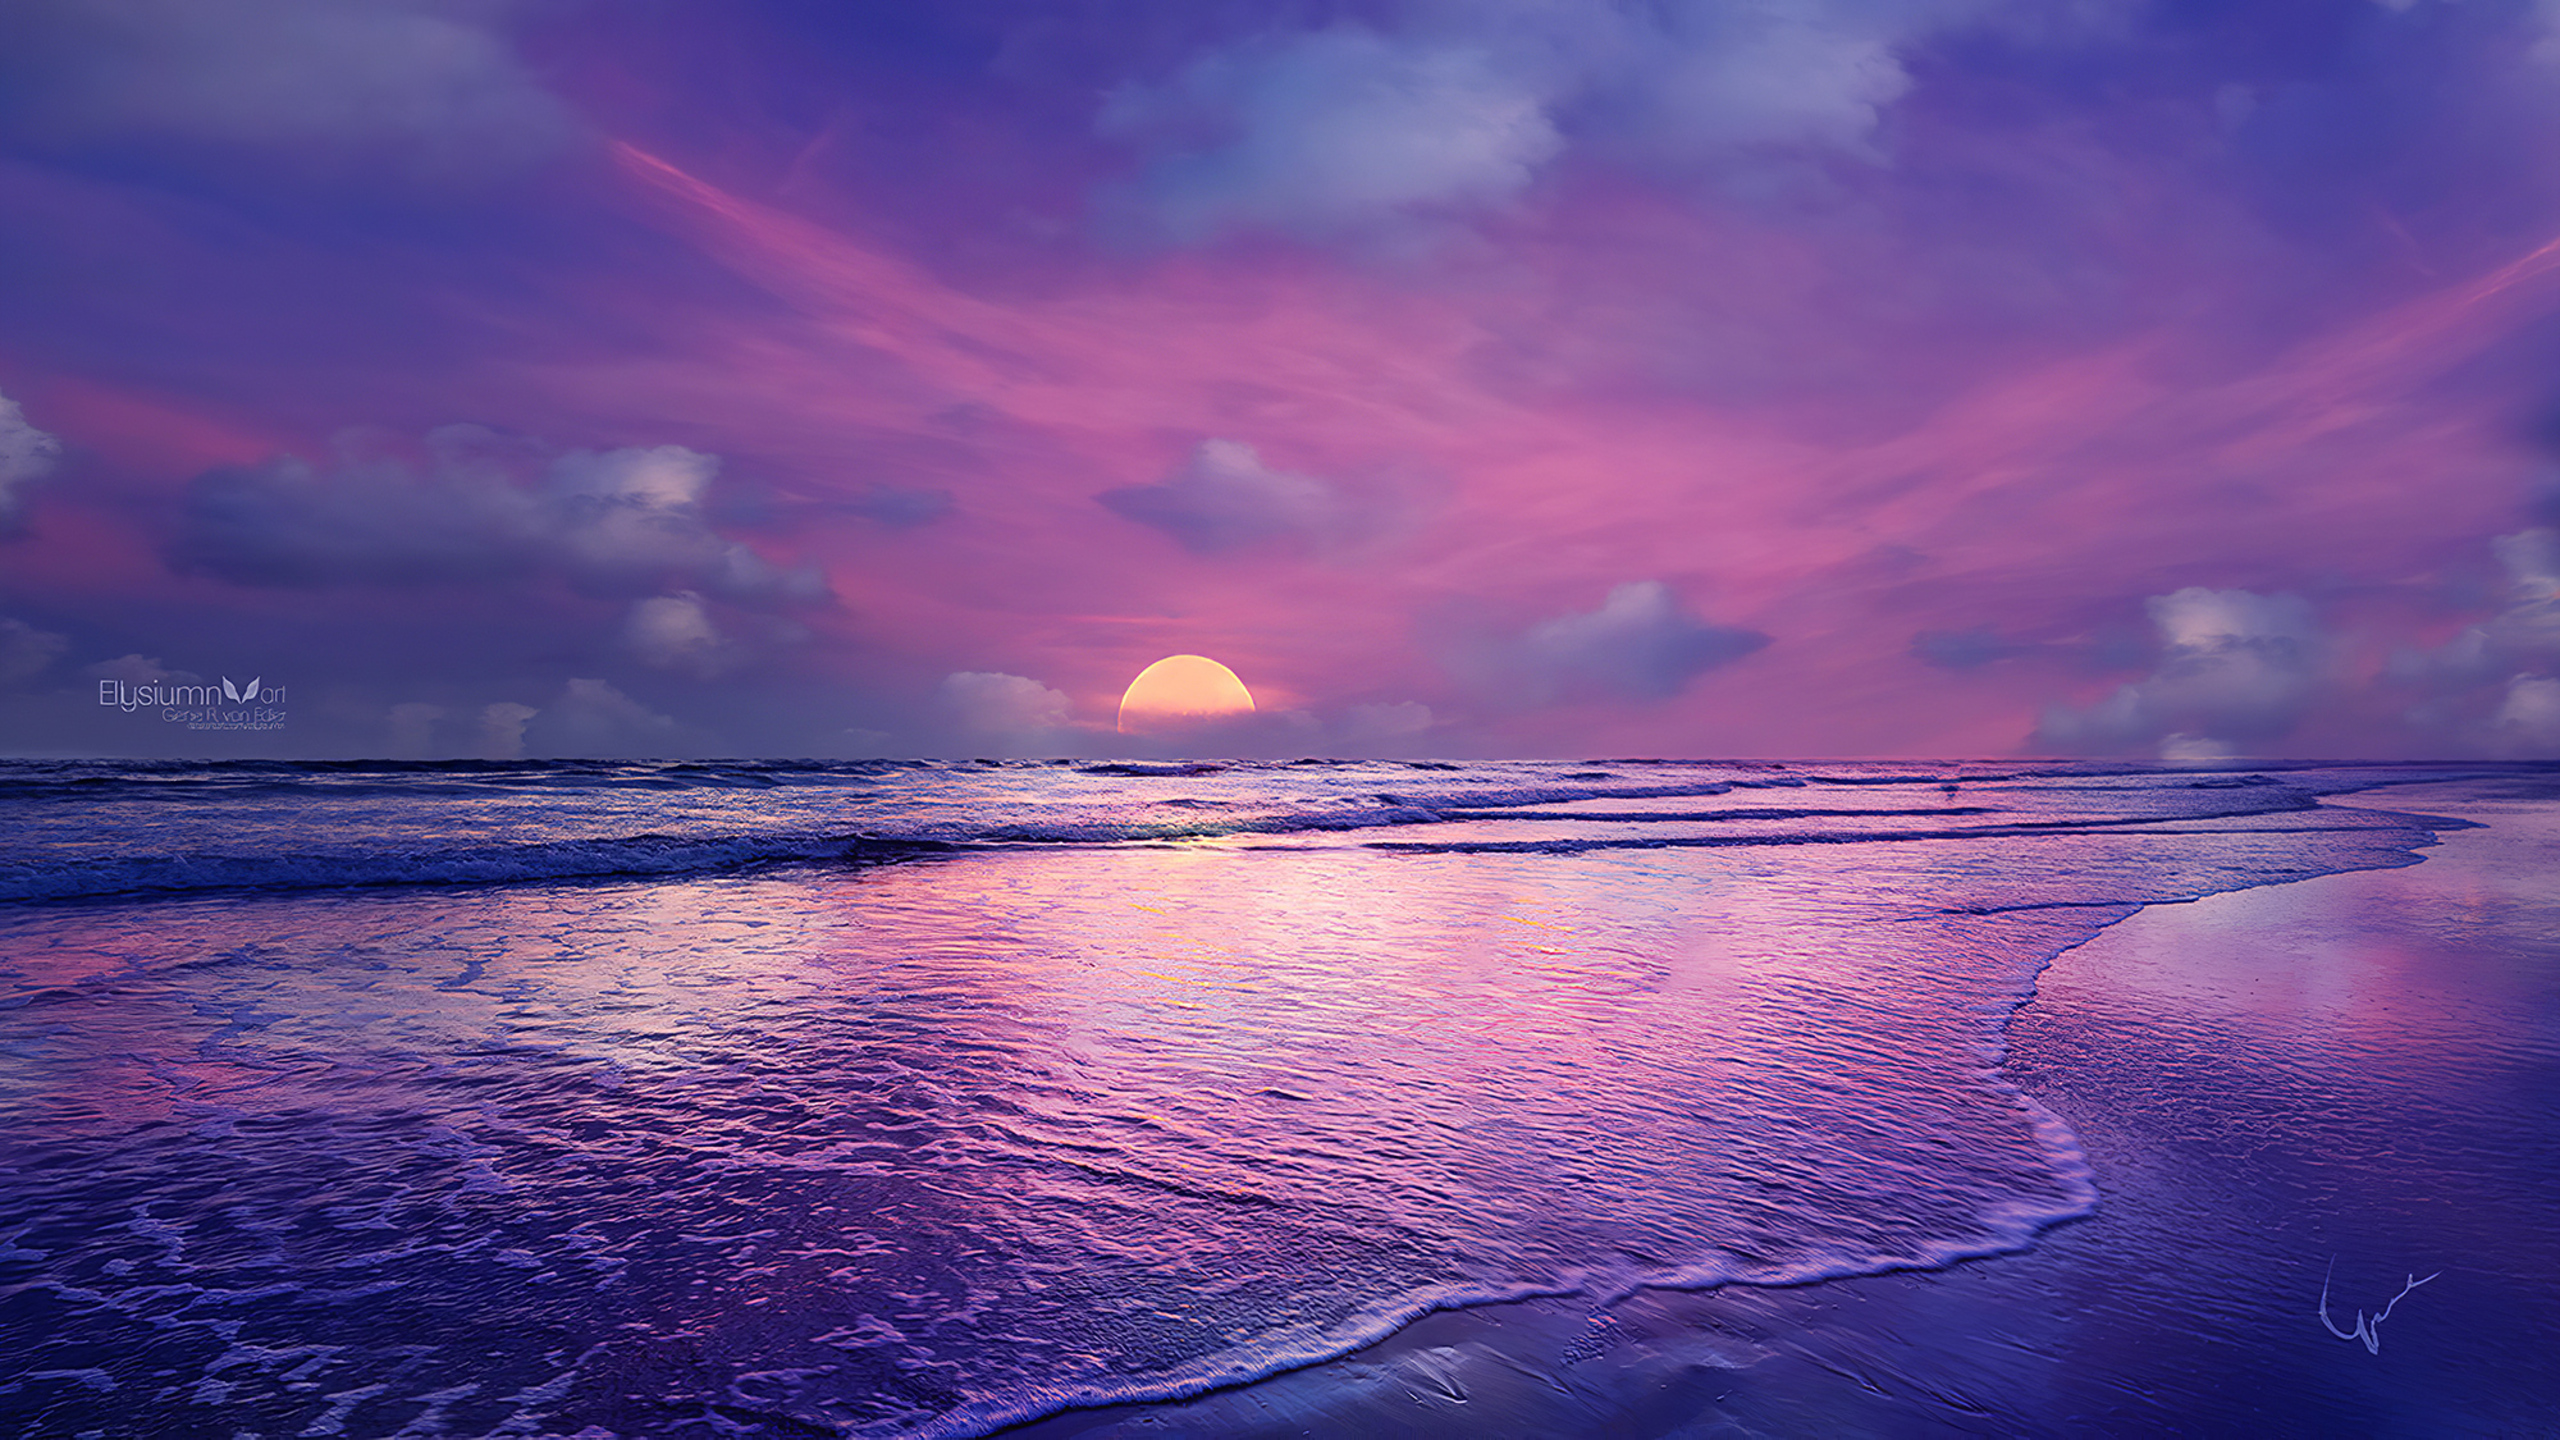 2560x1440 Dream Beach 1440p Resolution Hd 4k Wallpapers Images Backgrounds Photos And Pictures